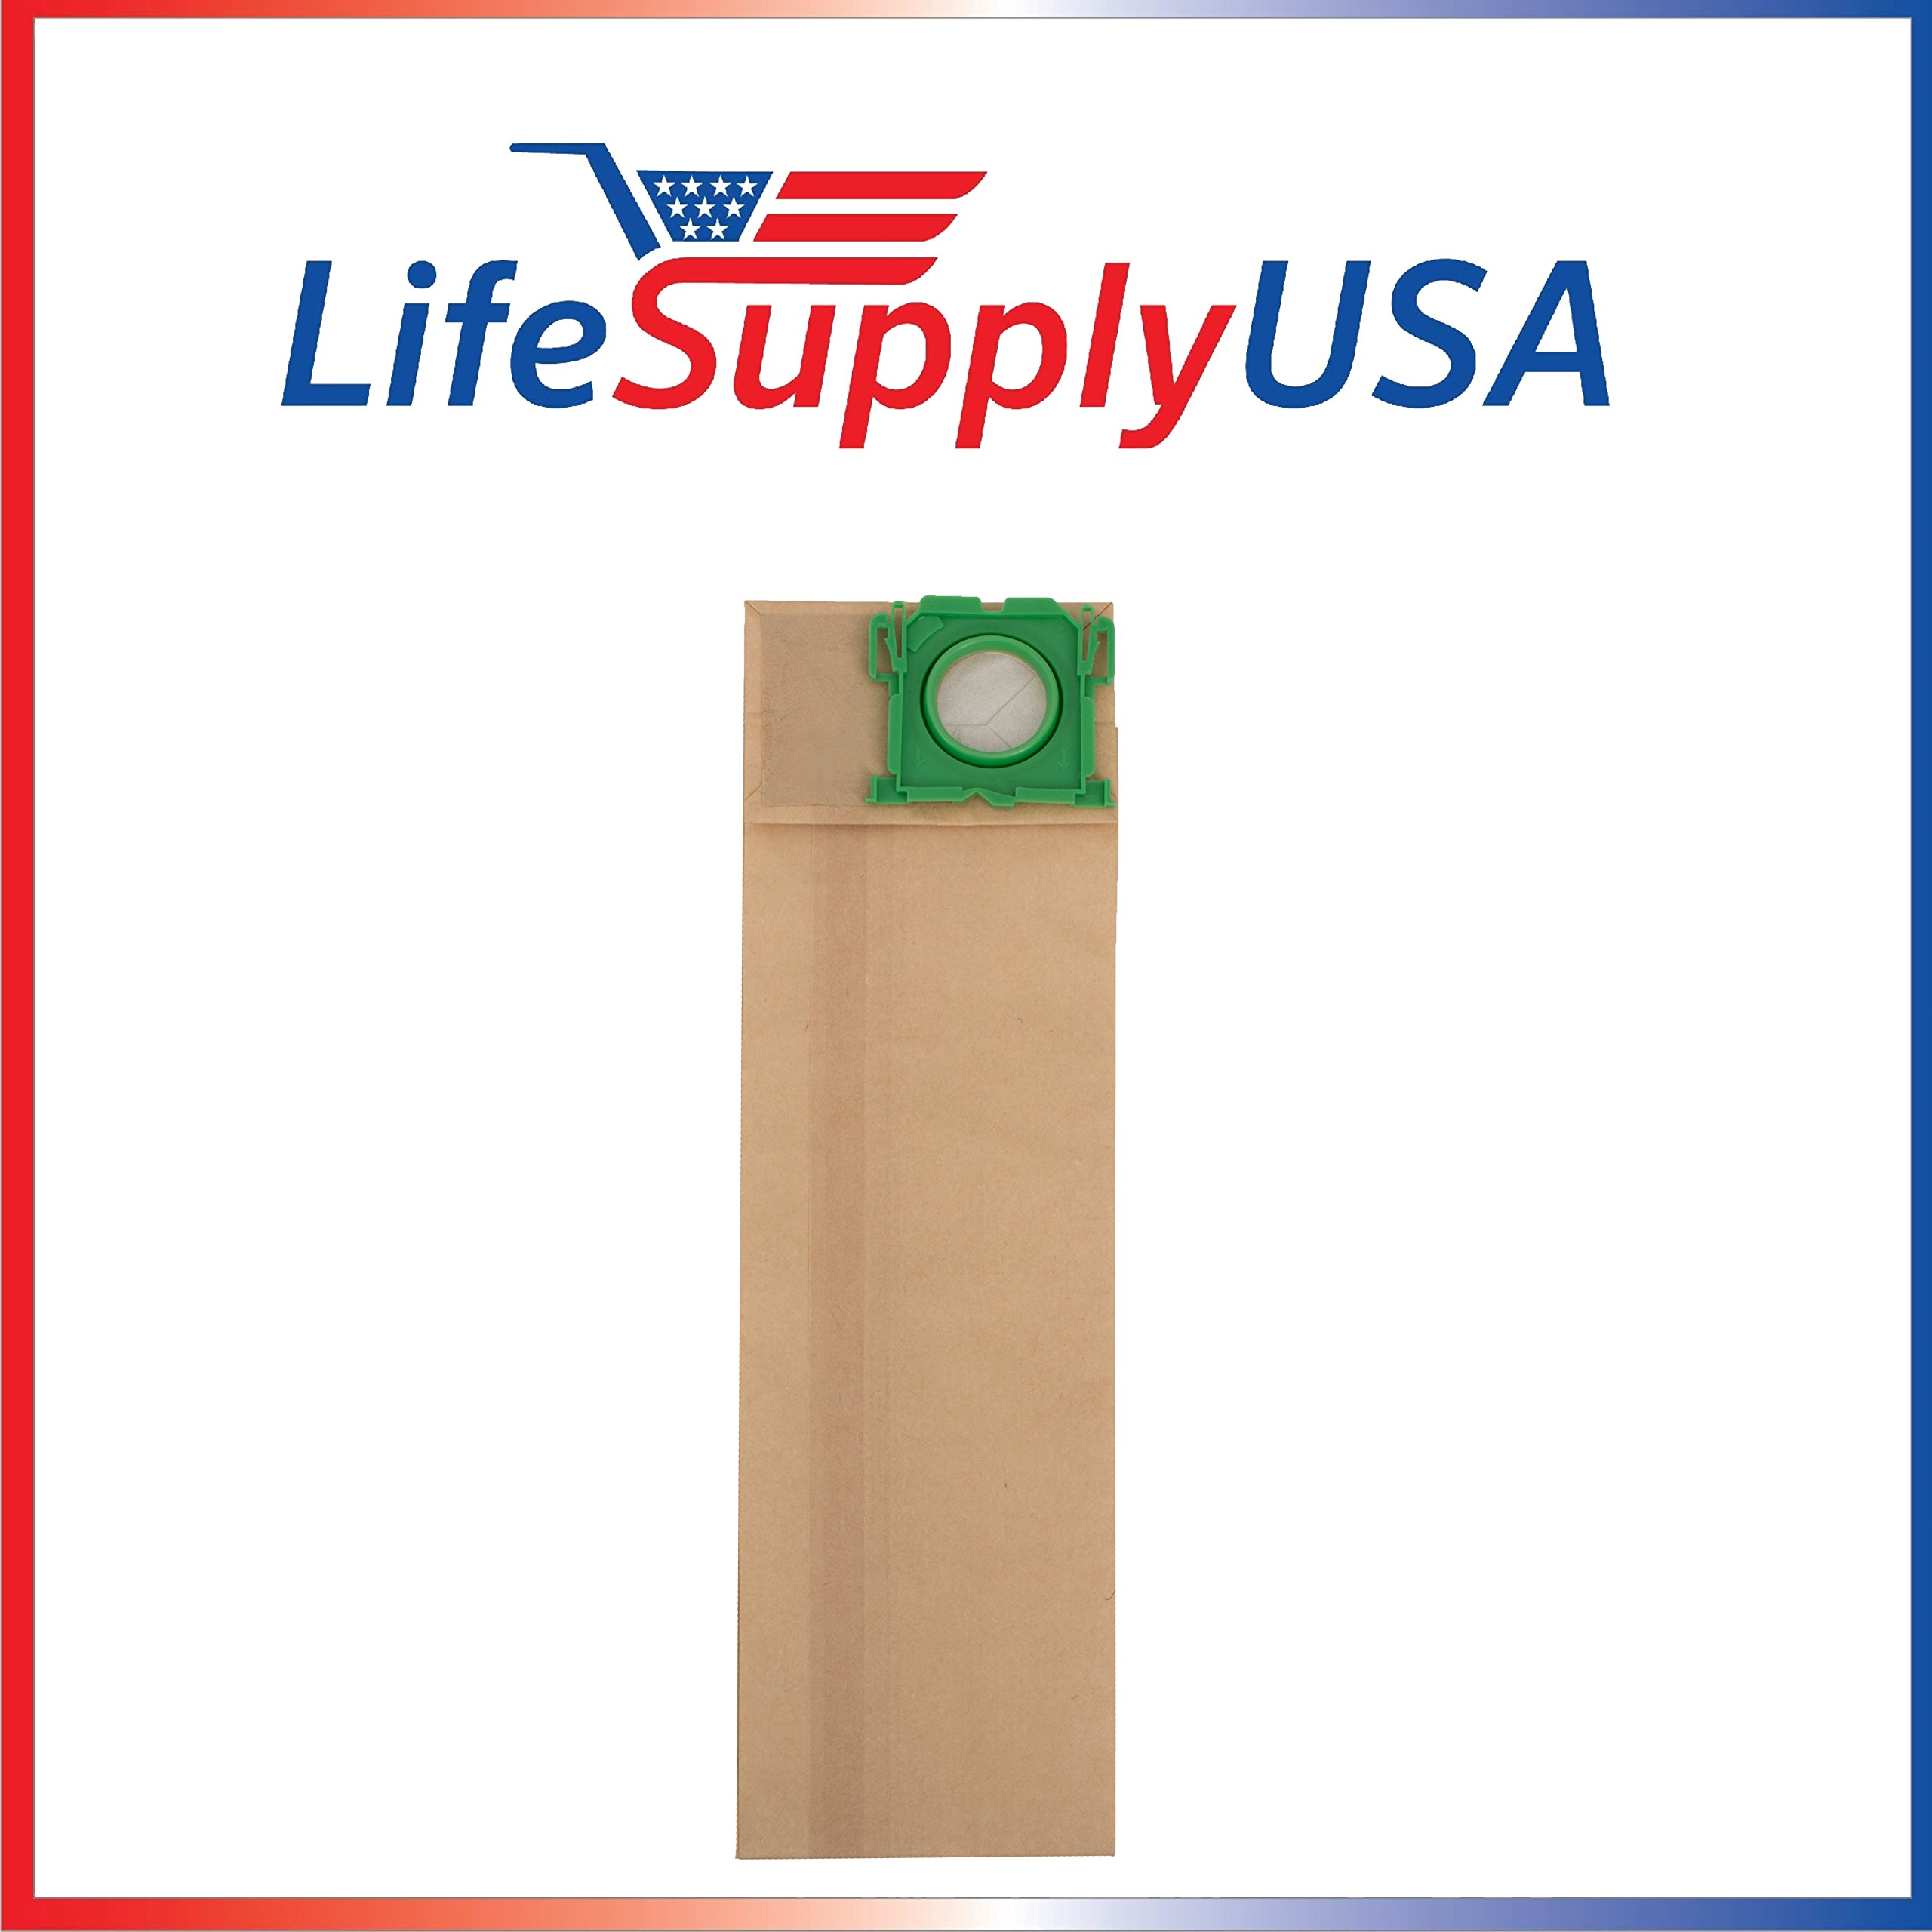 100 Pack Vacuum Bags for Windsor Sensor SR12 SR15 SR18 XP12 Versamatic Plus etc by LifeSupplyUSA